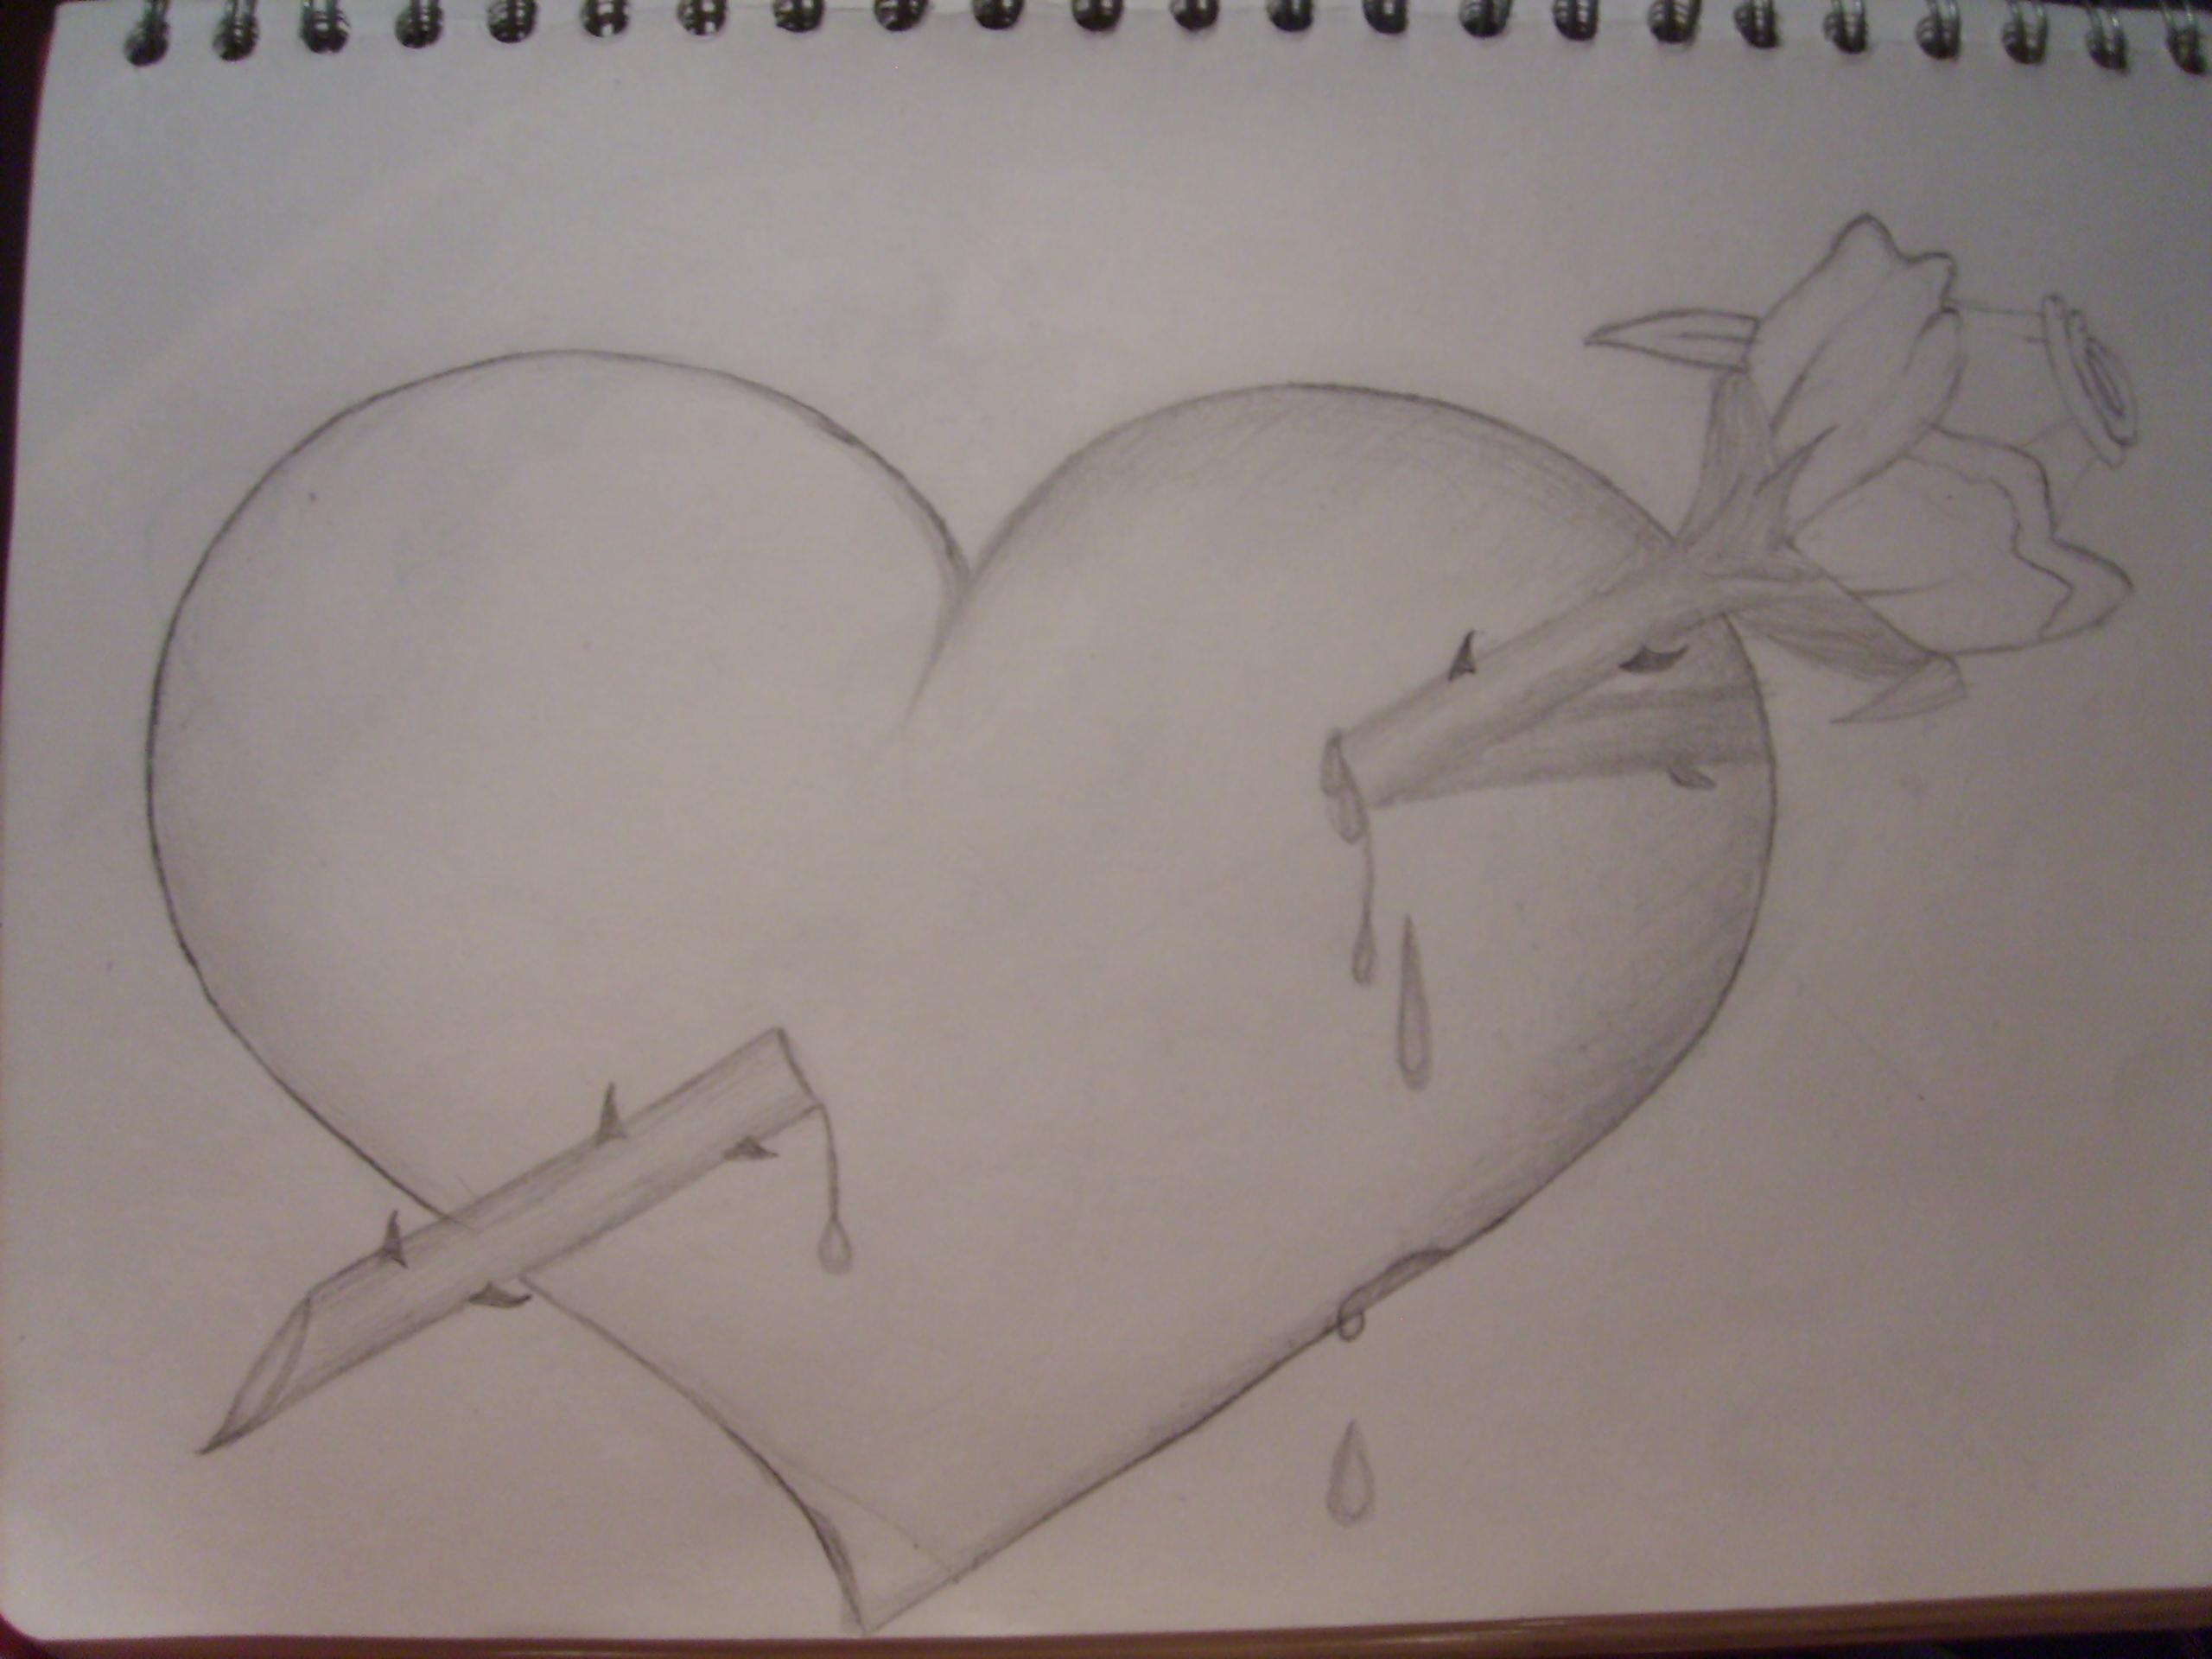 2560x1920 Images For Gt Hearts And Roses And Stars Drawings Art